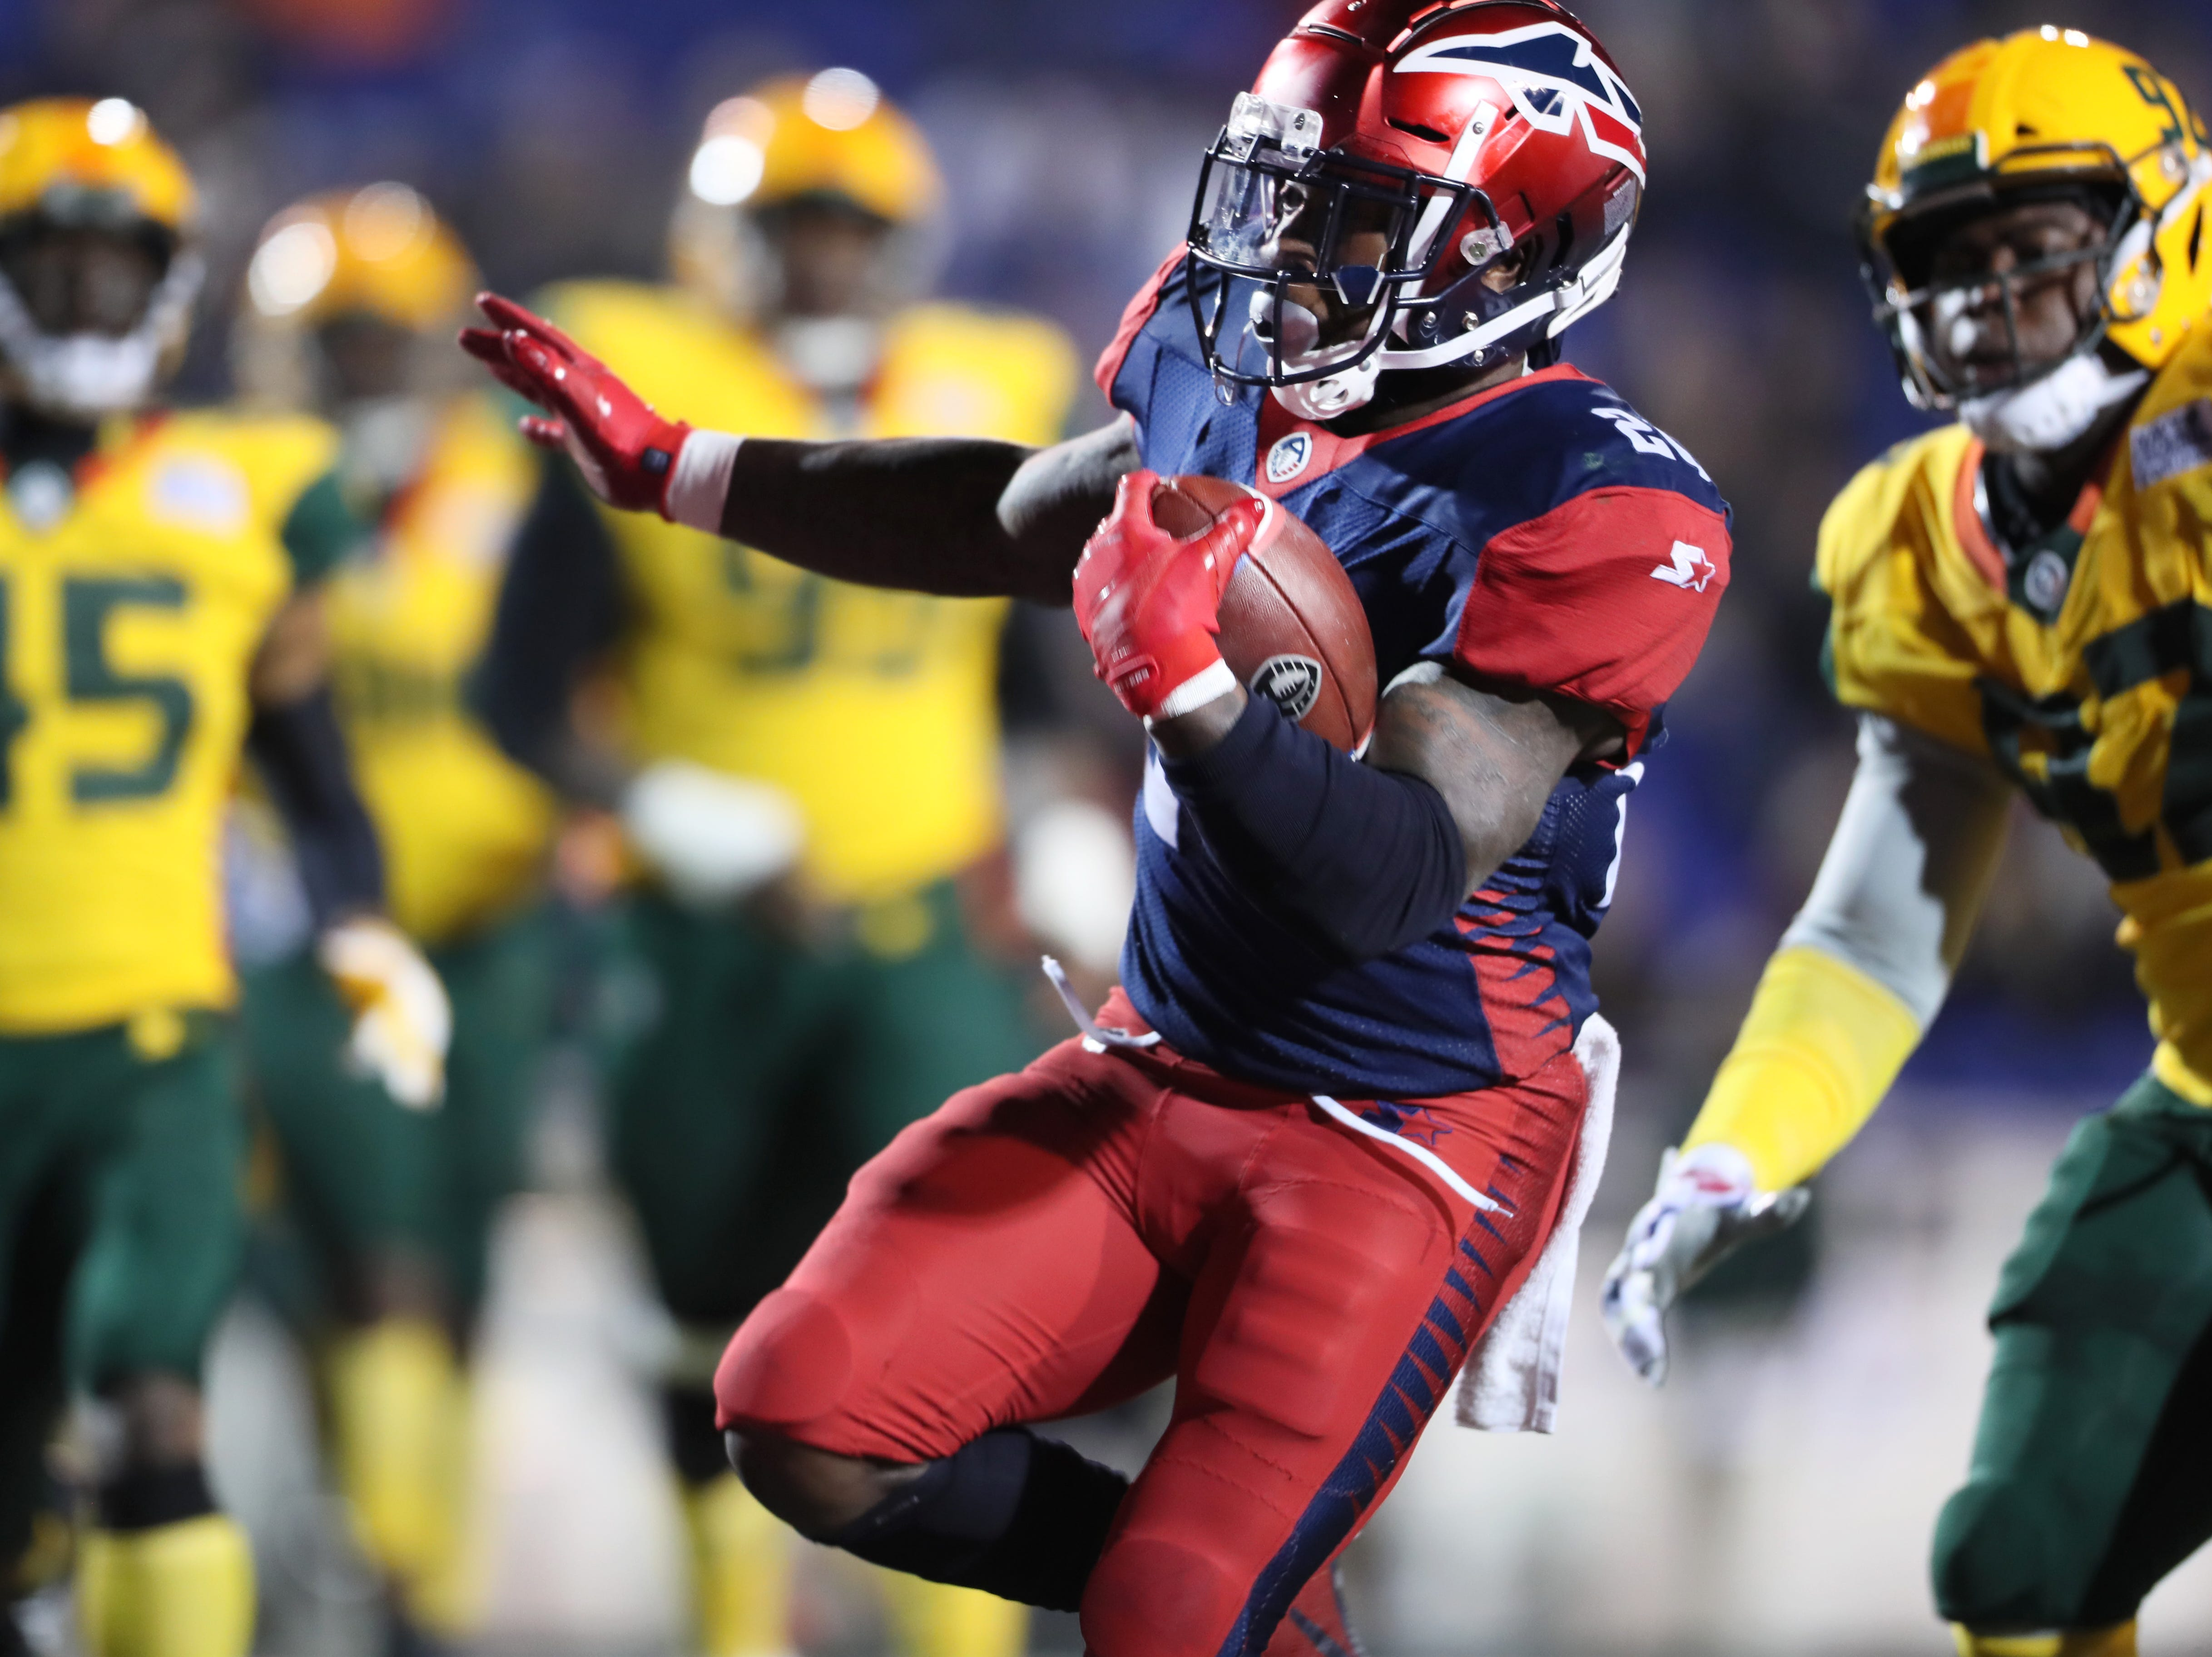 Memphis Express running back Zac Stacy runs in for a touchdown against the Arizona Hotshots during their game at the Liberty Bowl on Saturday, Feb. 16, 2019.